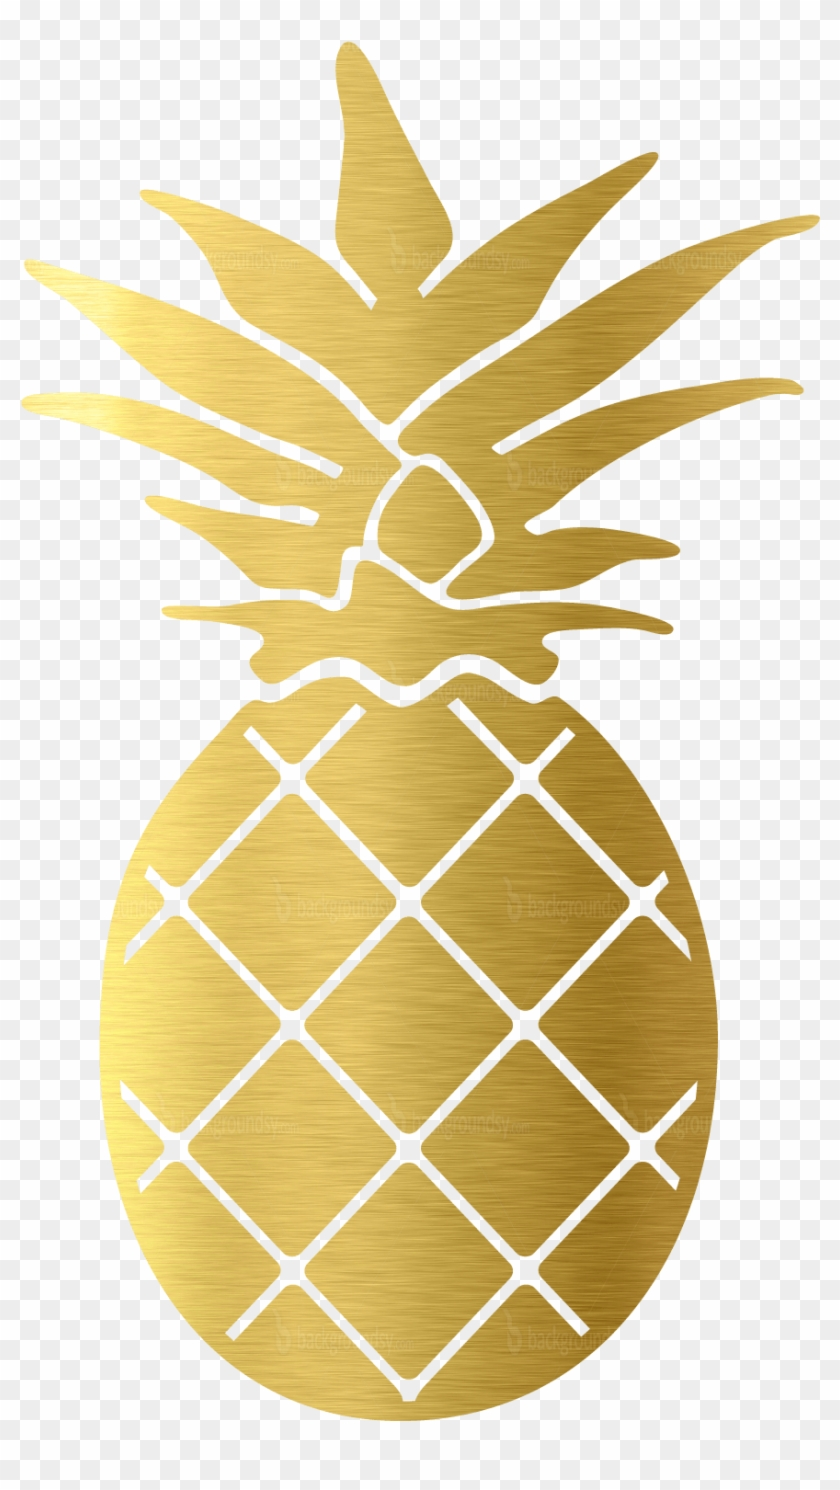 Pineapple glitter. Gold png clipart transparent